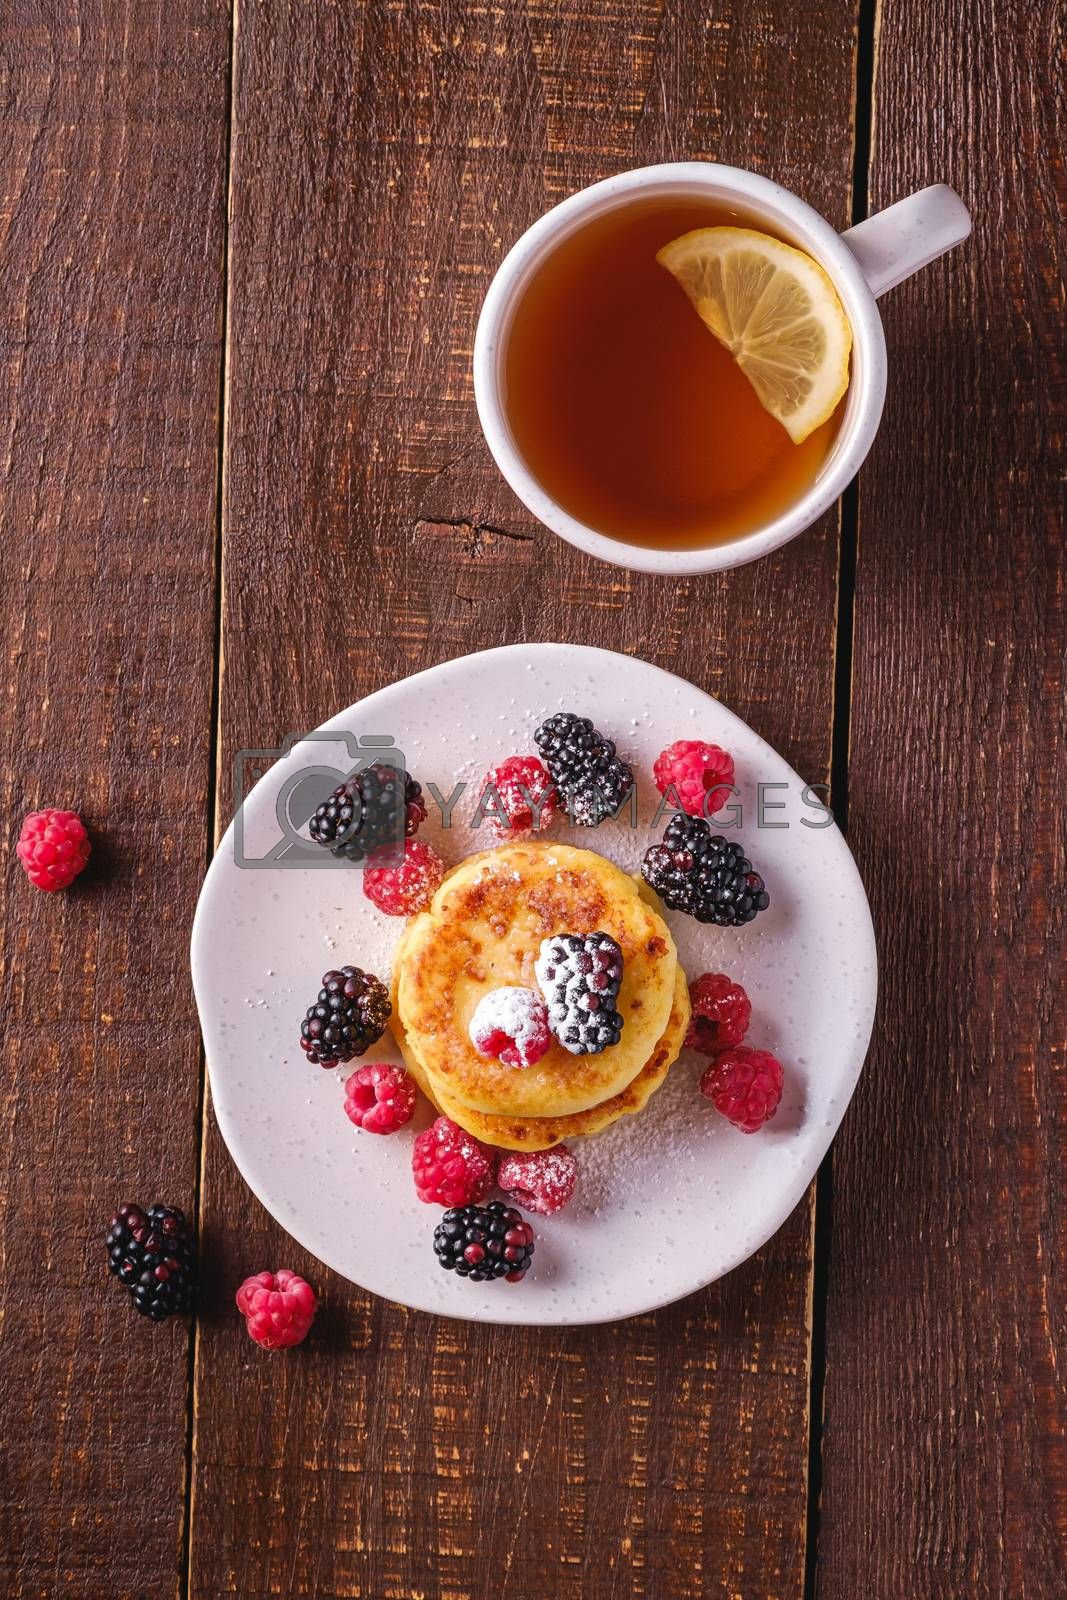 Cottage cheese pancakes, curd fritters dessert with raspberry and blackberry berries in plate near to hot tea cup with lemon slice on dark brown wooden background, top view